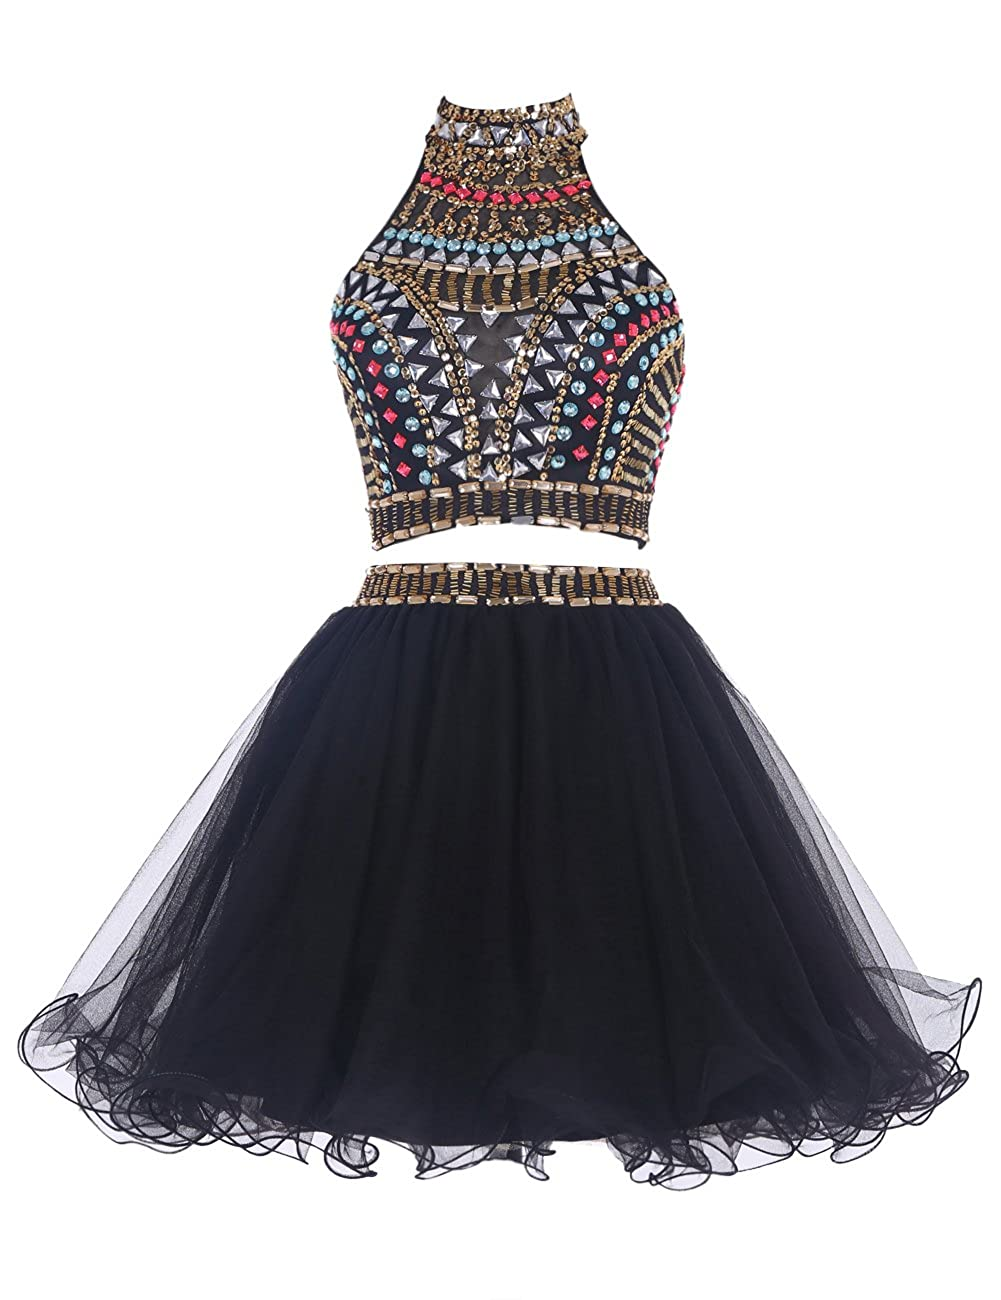 cbb424f0927 Amazon.com  Wedtrend Women s Halter Prom Dress Short Tulle Homecoming Dress  with Beads  Clothing